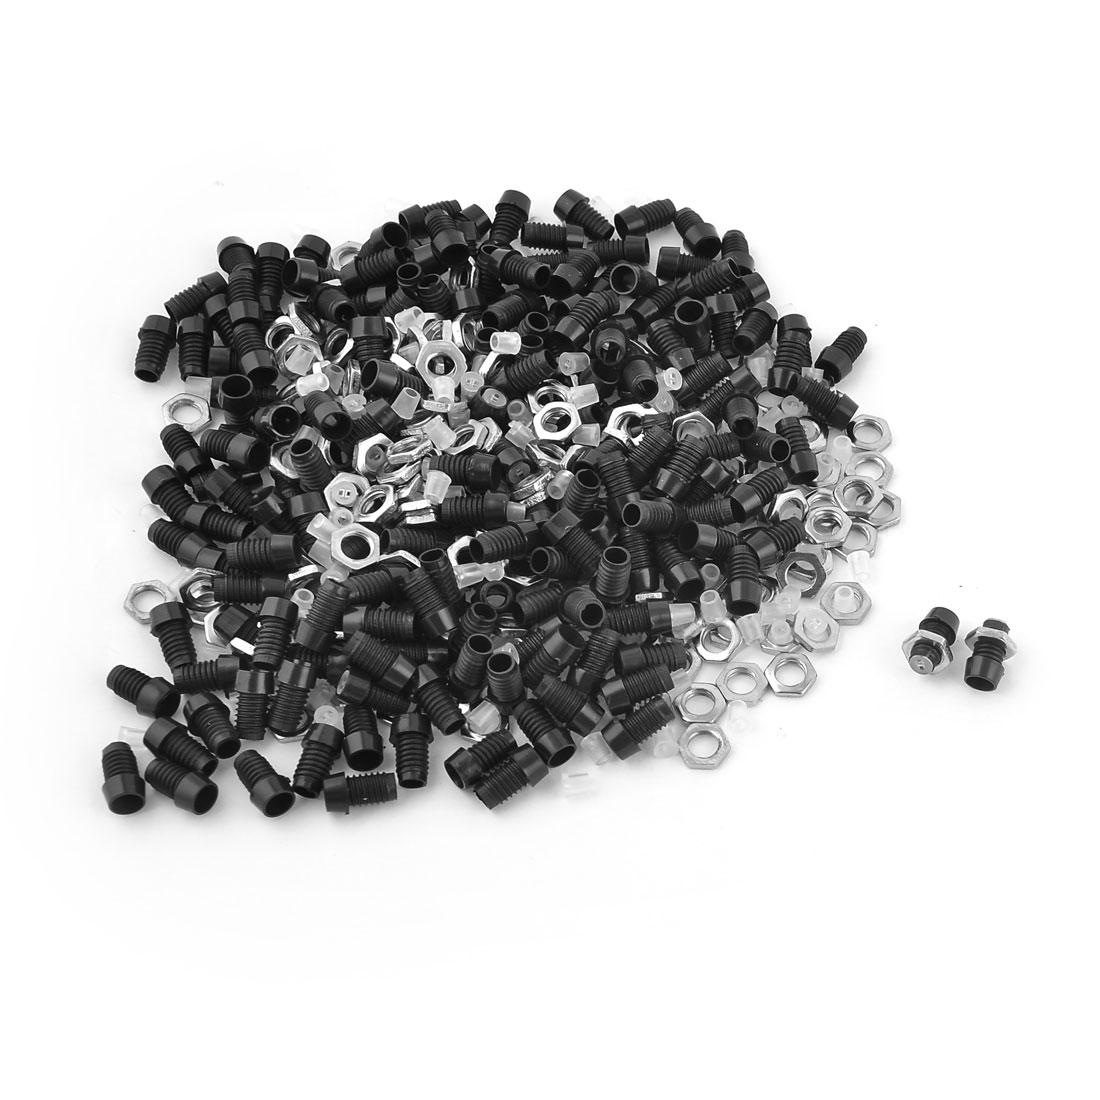 200 Pieces Black Plastic 3mm LED Mounting Holder Panel w Metal Nut